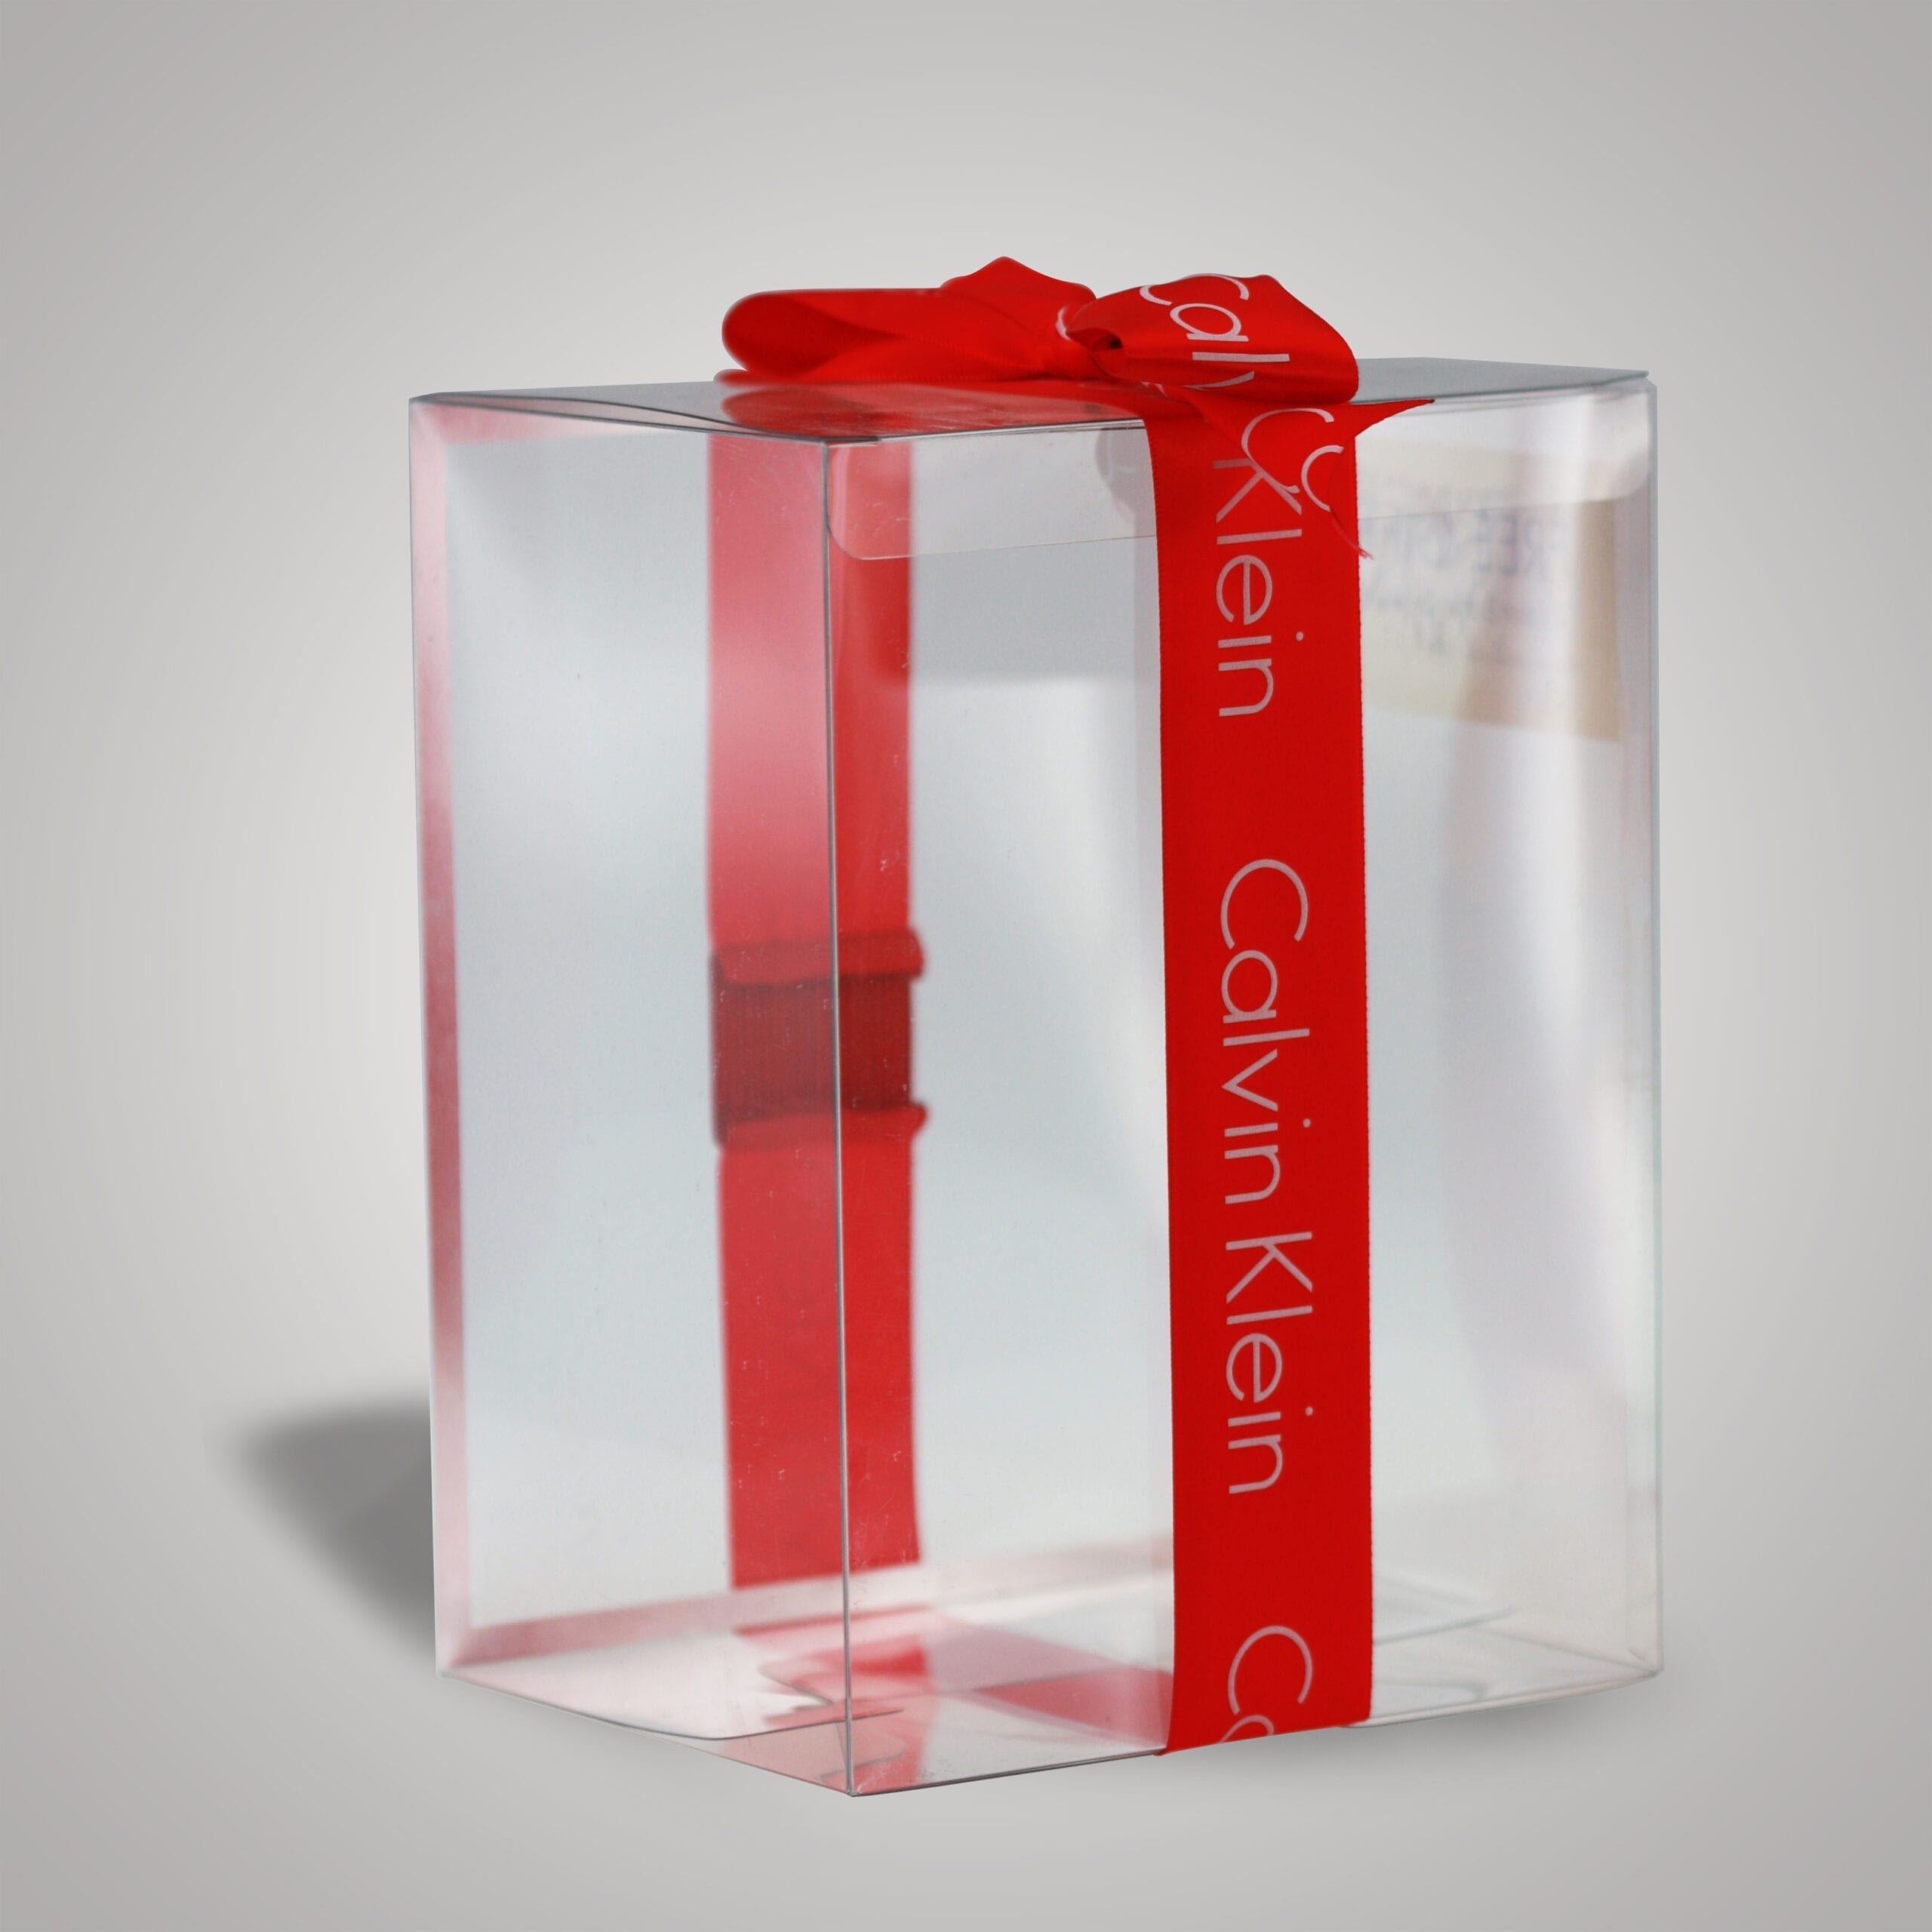 Branded clear packaging serves the dual purpose of showing off your product while also branding the product for the optimal effect. This custom holiday clear packaging exemplifies that even the simplest of packages can speak volumes for a product.